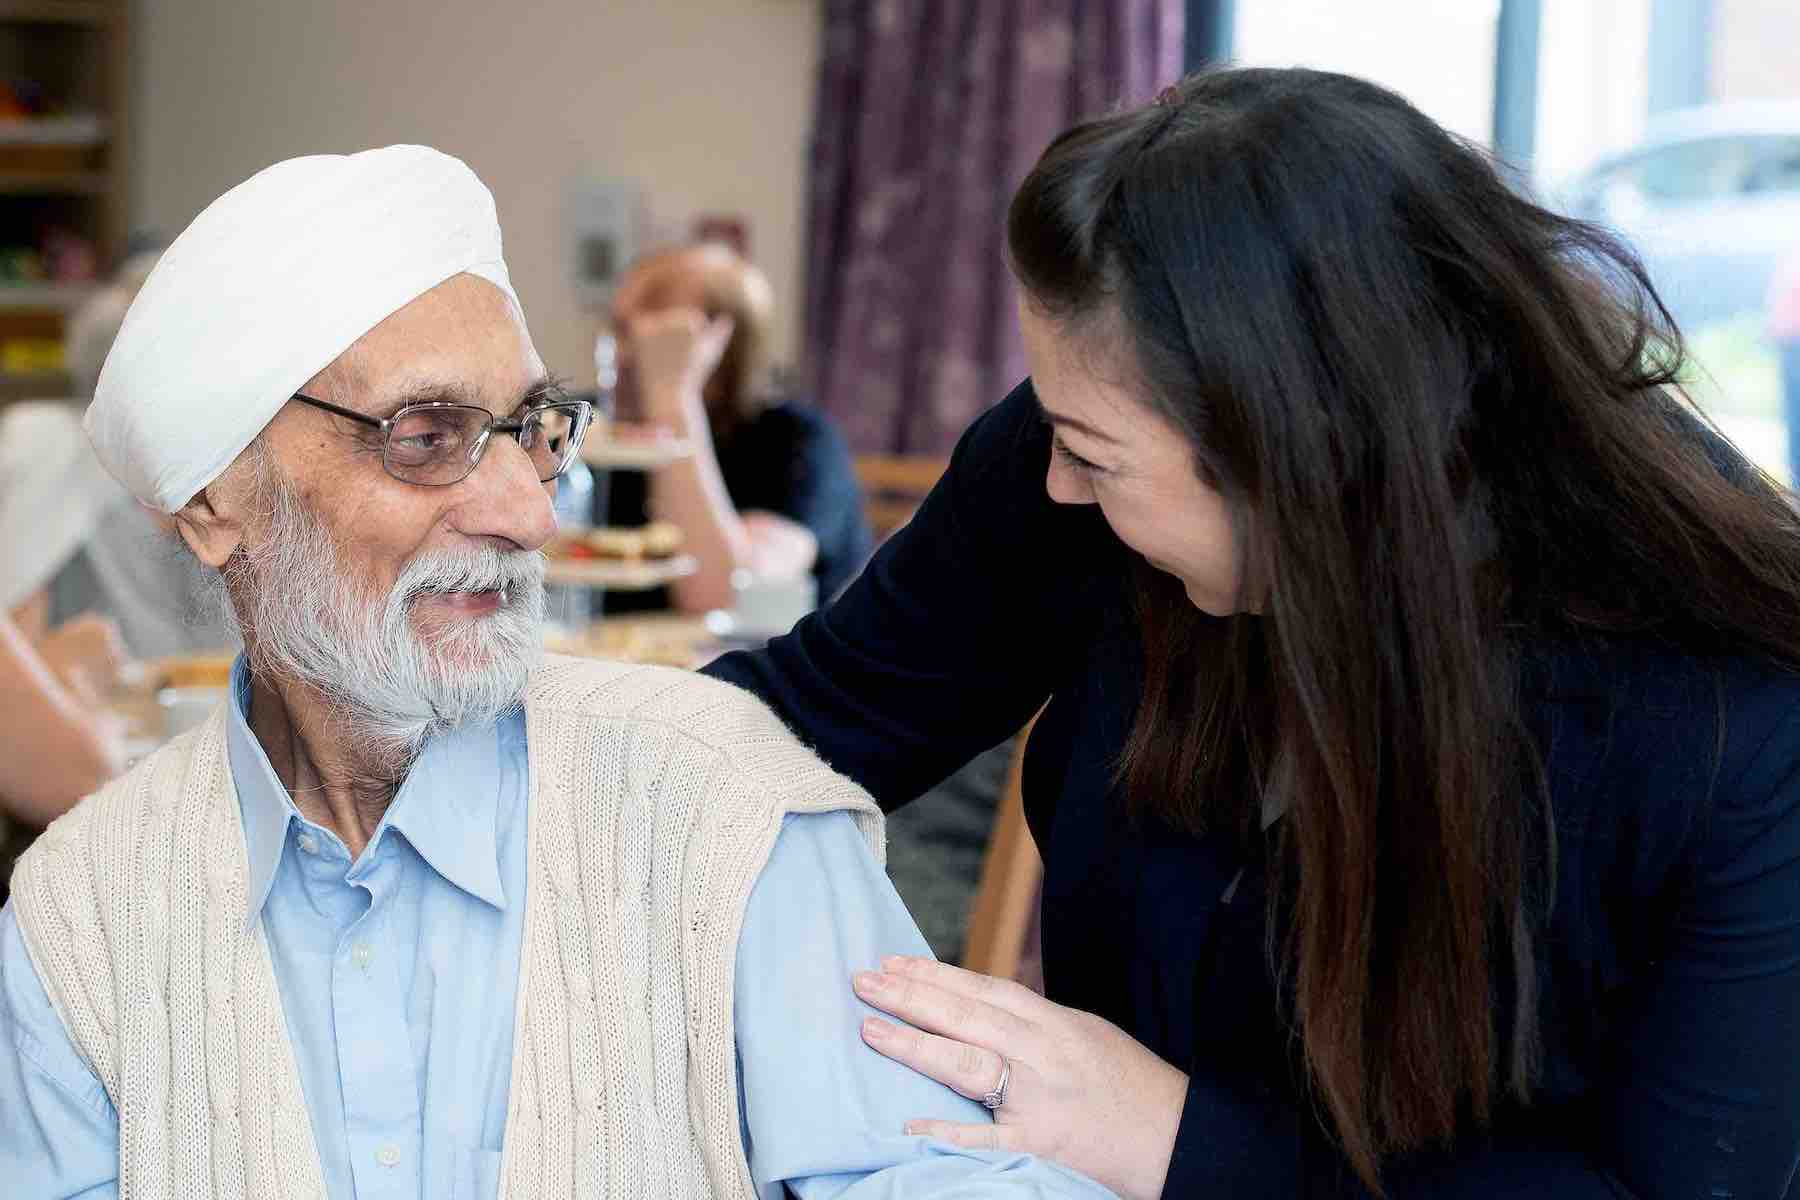 Mears carer with arm around service user, looking at each other